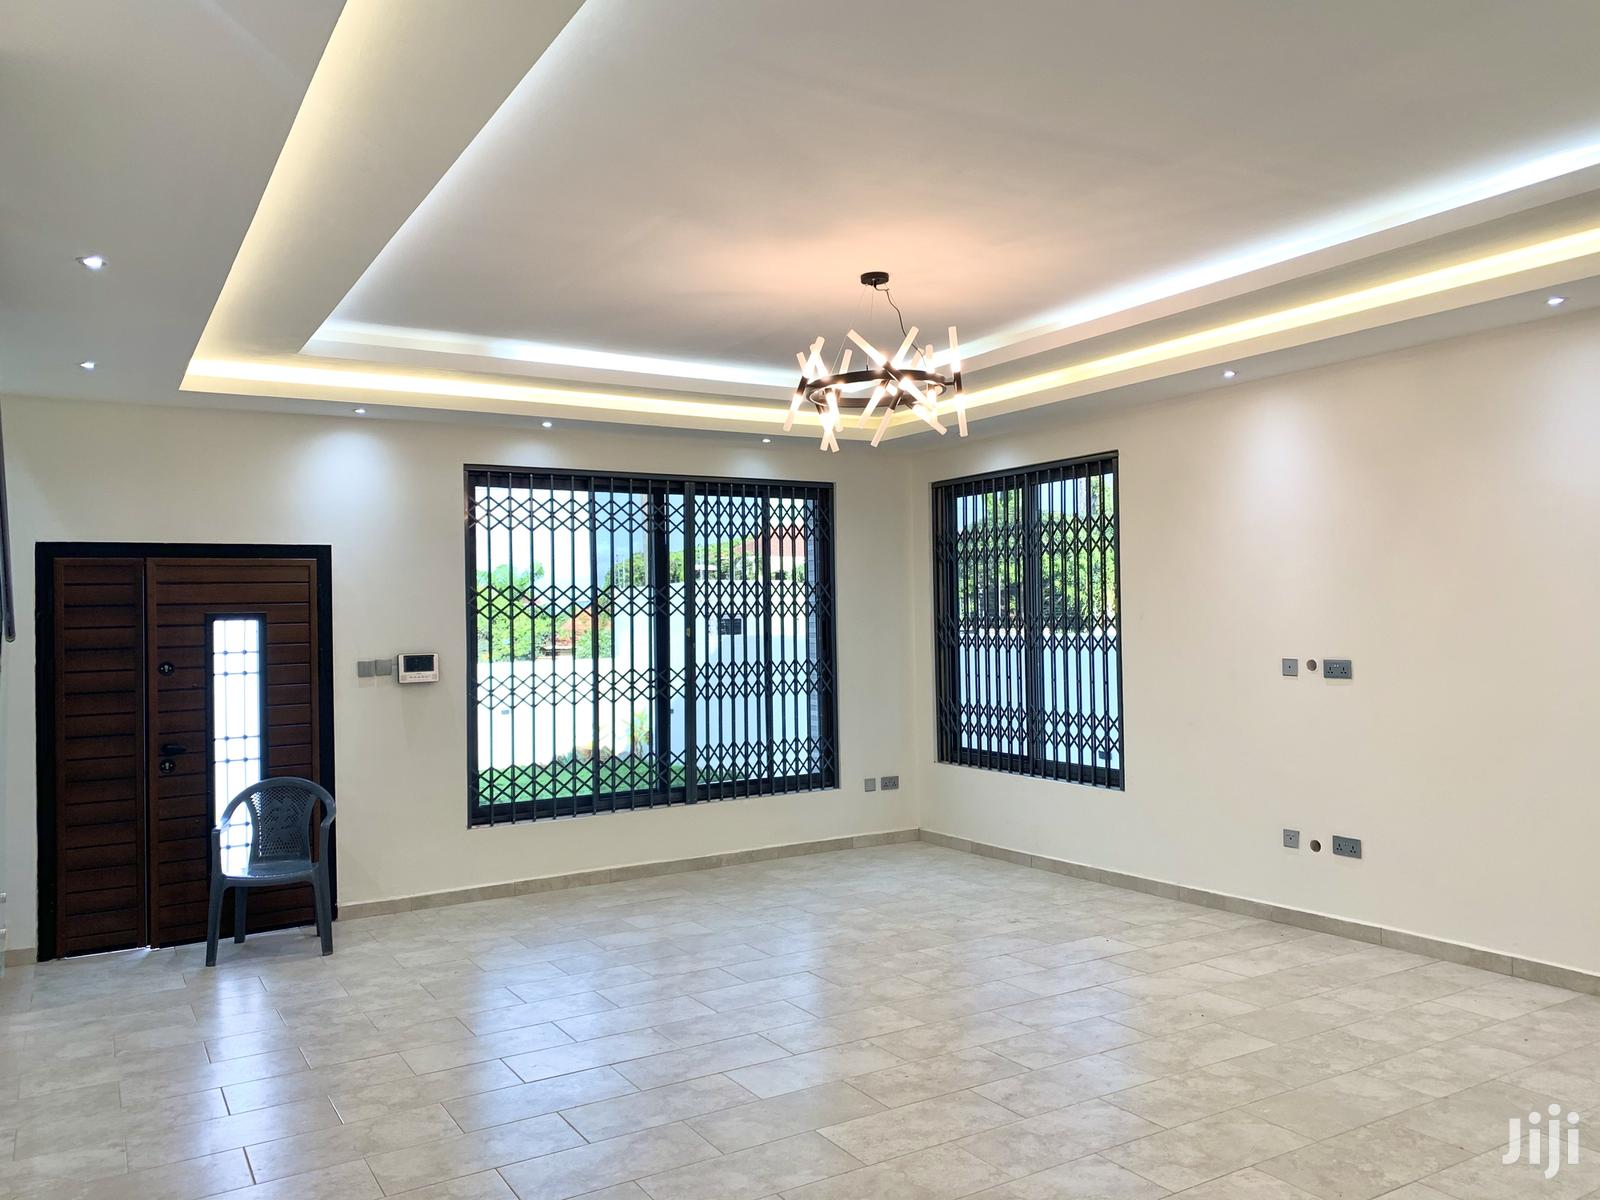 4 Bedrooms 1 Bq for Sale Adjiringanor | Houses & Apartments For Sale for sale in East Legon, Greater Accra, Ghana